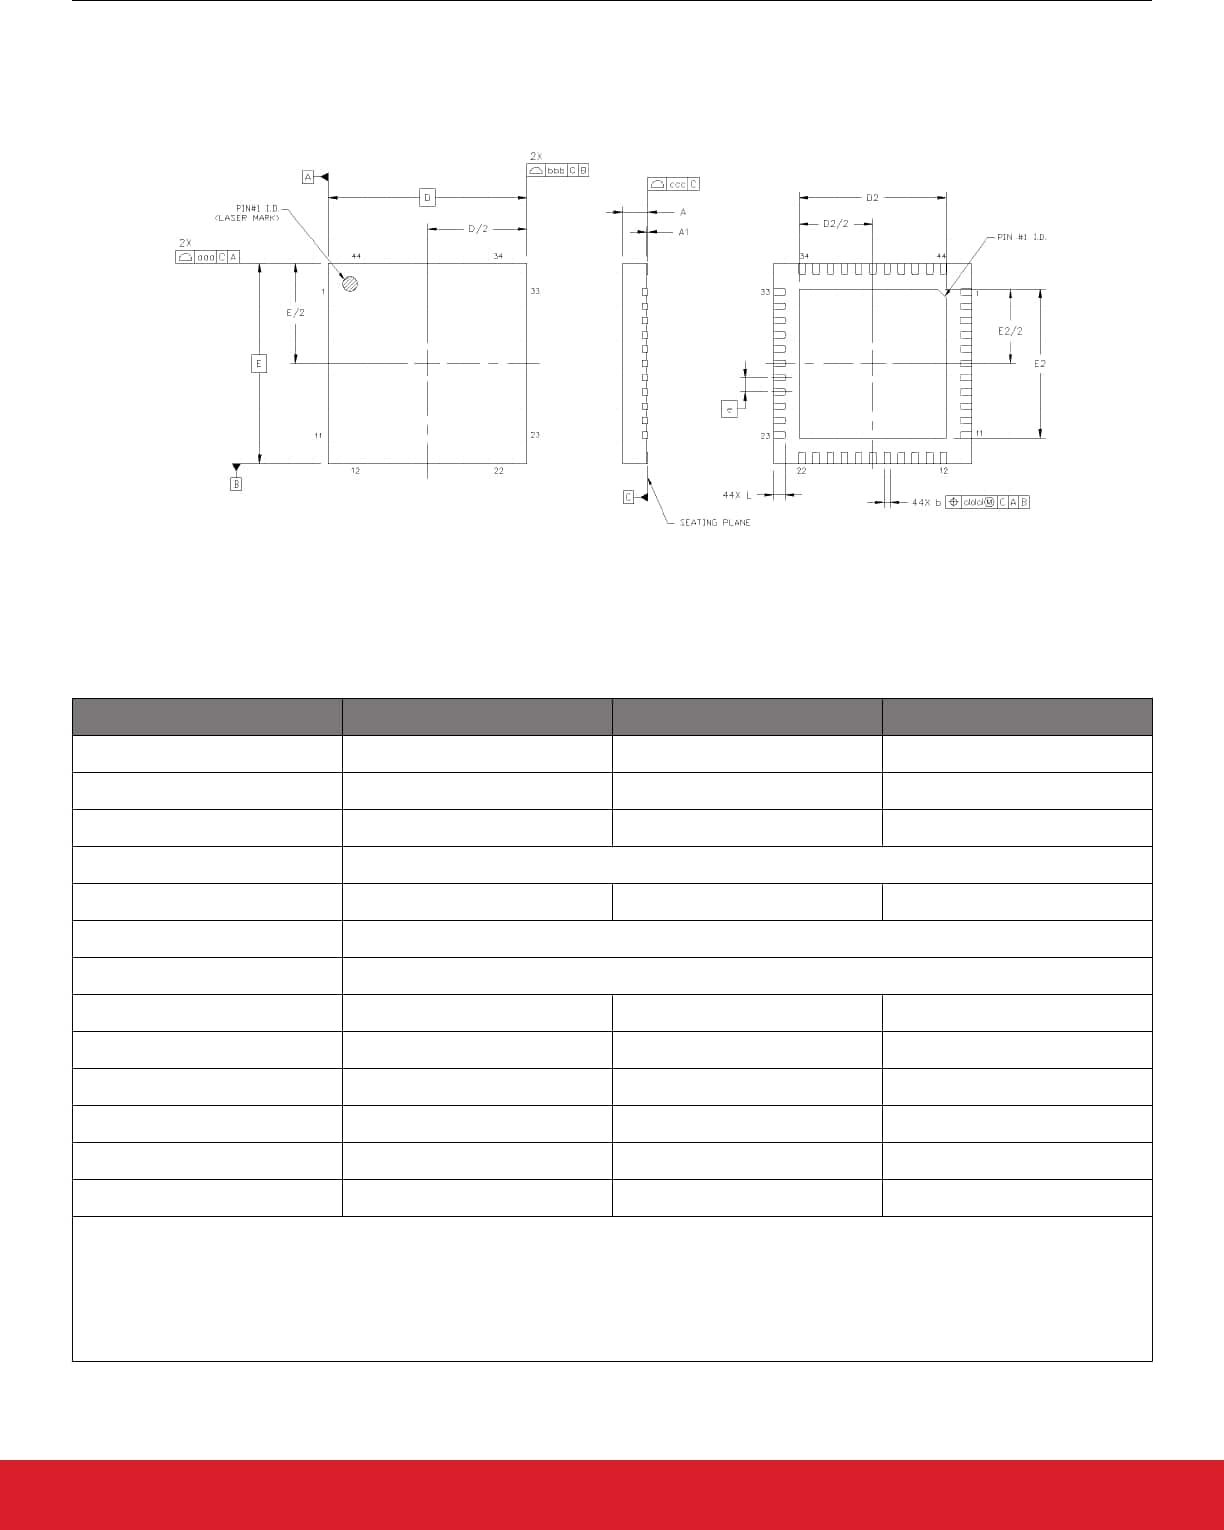 hight resolution of 10 2 si5340 7x7 mm 44 qfn package diagram